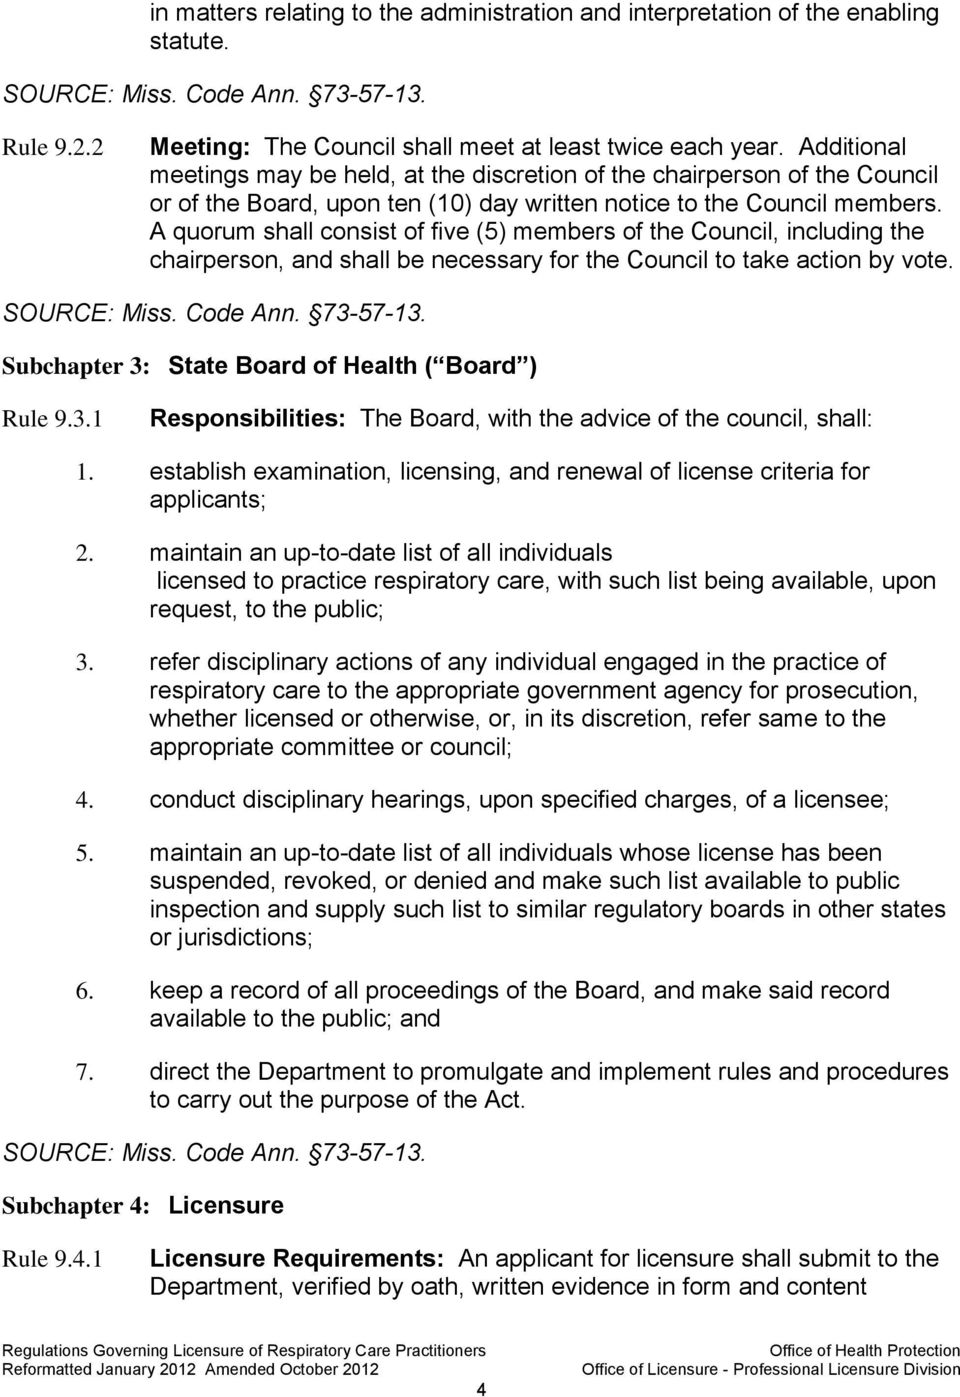 A quorum shall consist of five (5) members of the Council, including the chairperson, and shall be necessary for the Council to take action by vote.